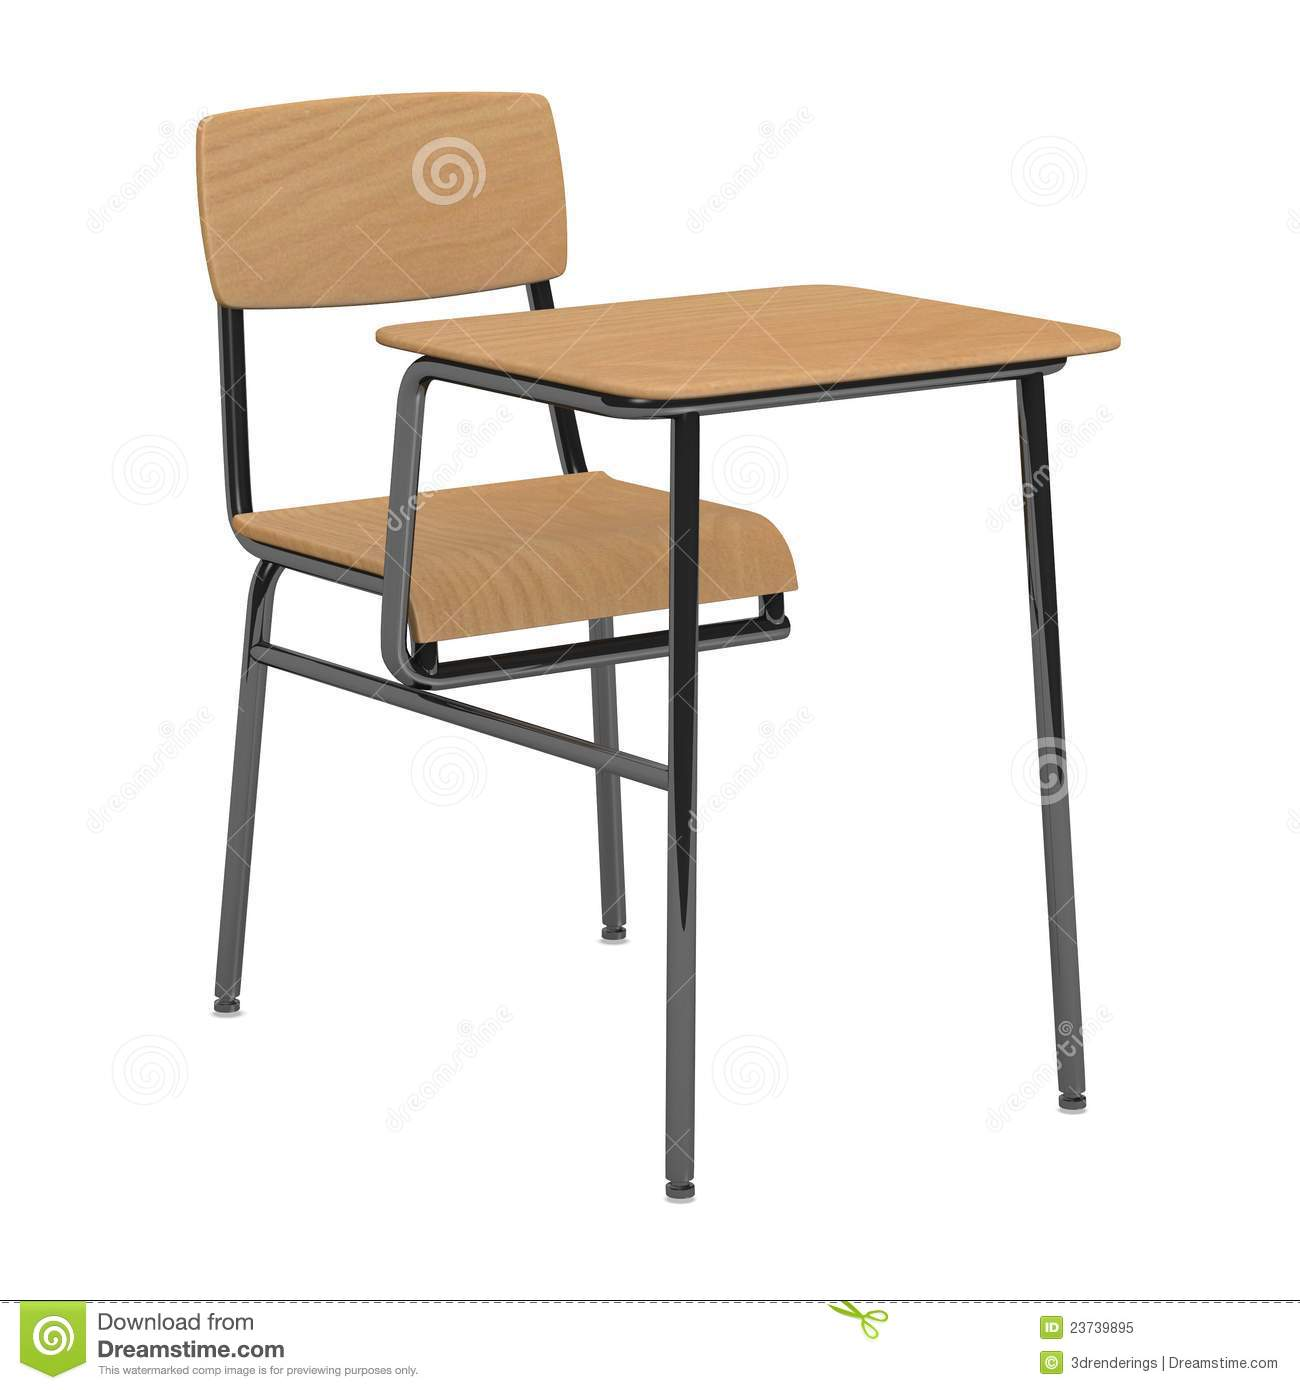 school chair and table for a single person stock illustration rh dreamstime com single study table and chair single study table and chair